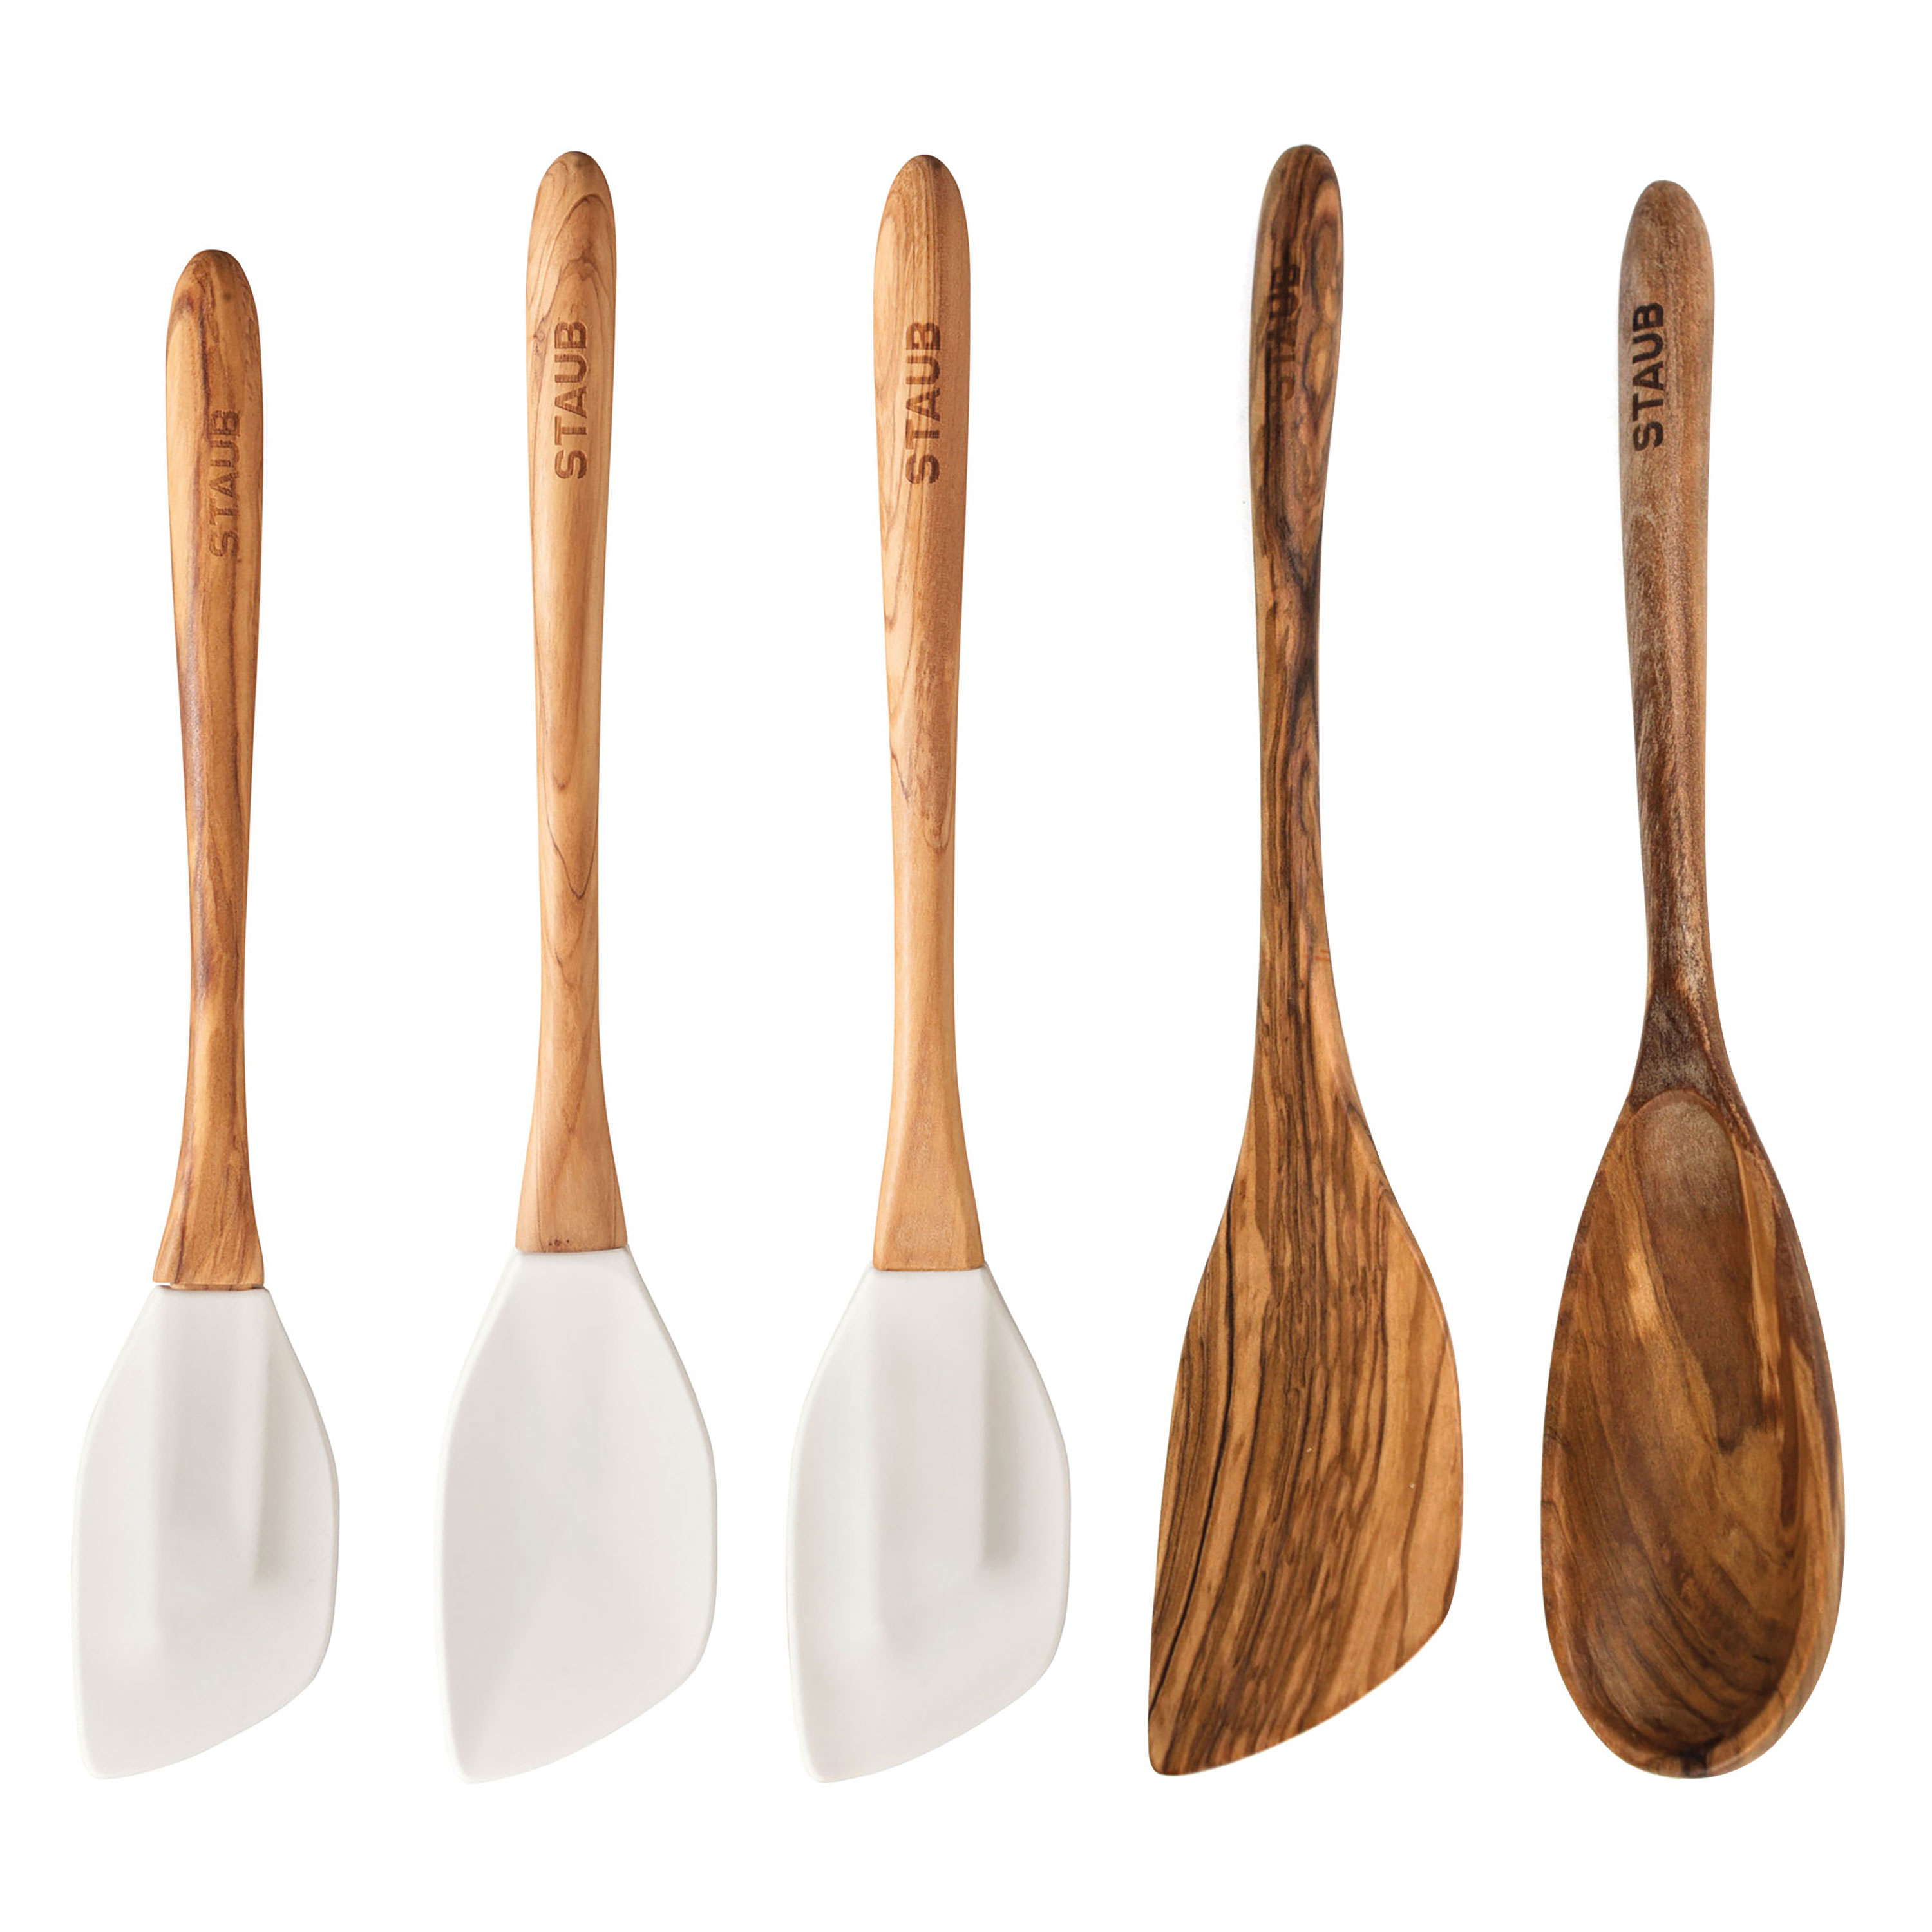 Attractive Olive Wood Kitchen Utensils #18 - Cutlery And More